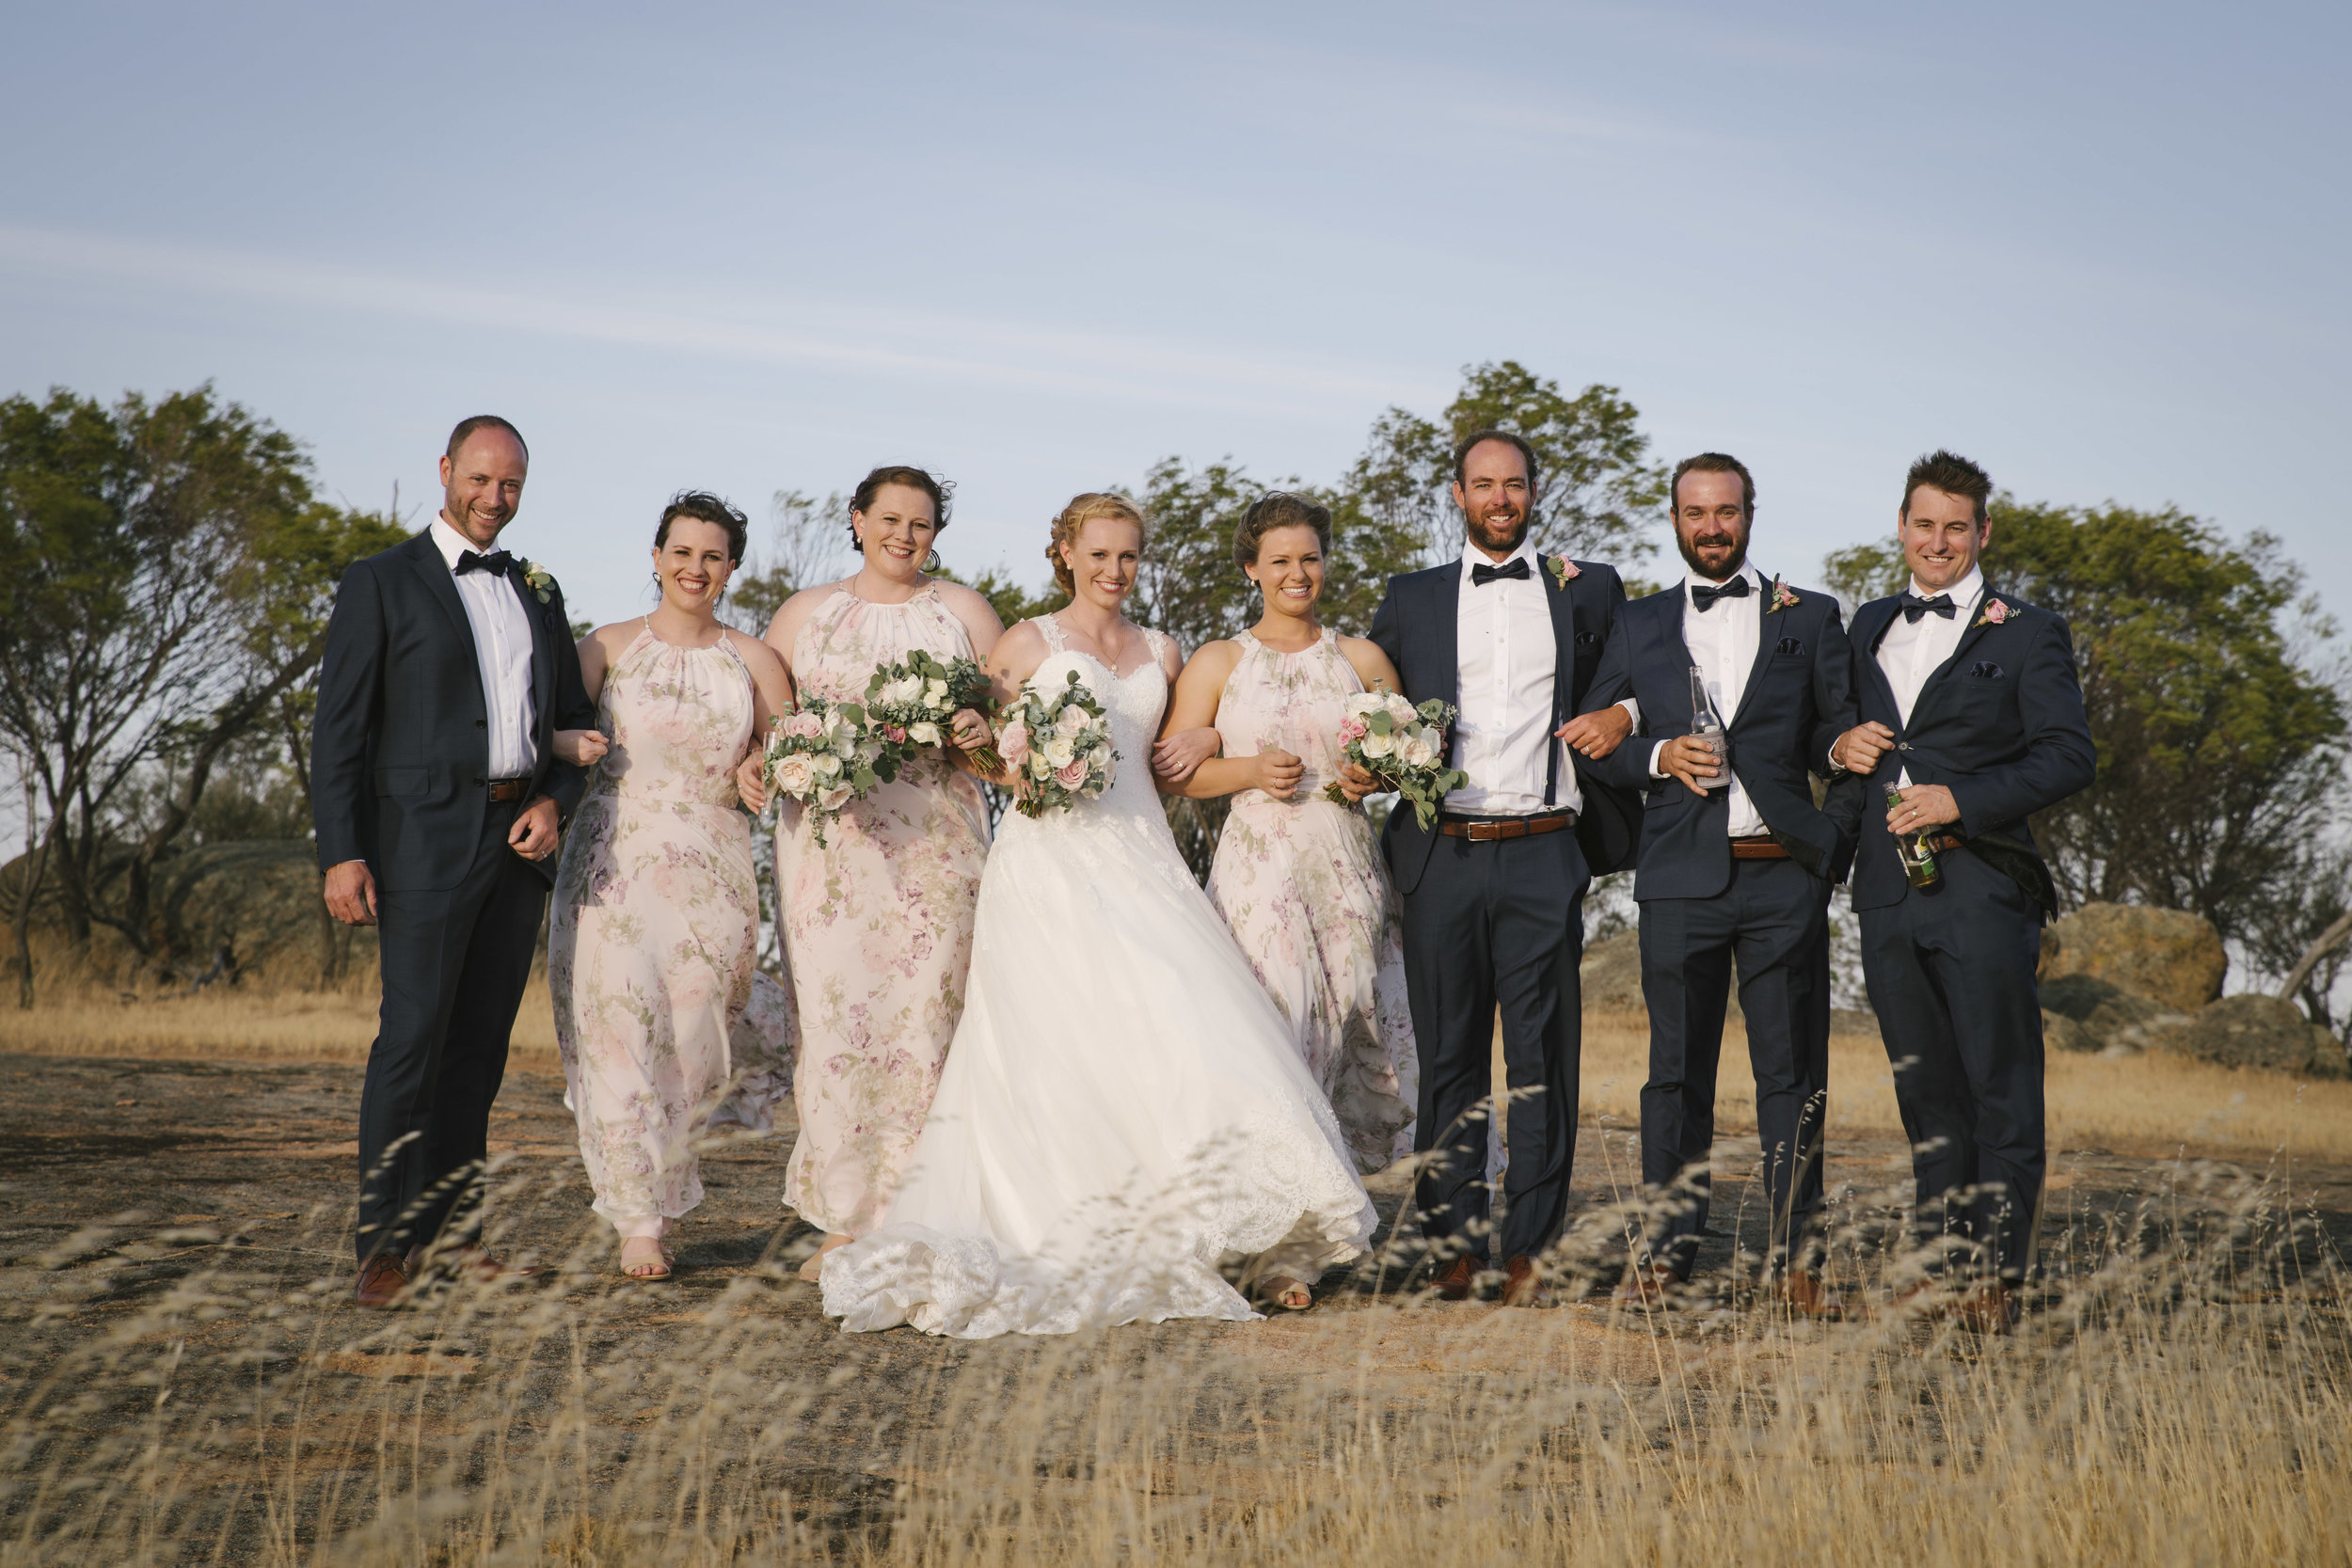 Wheatbelt Merredin Rustic Rural Farm Wedding (56).jpg